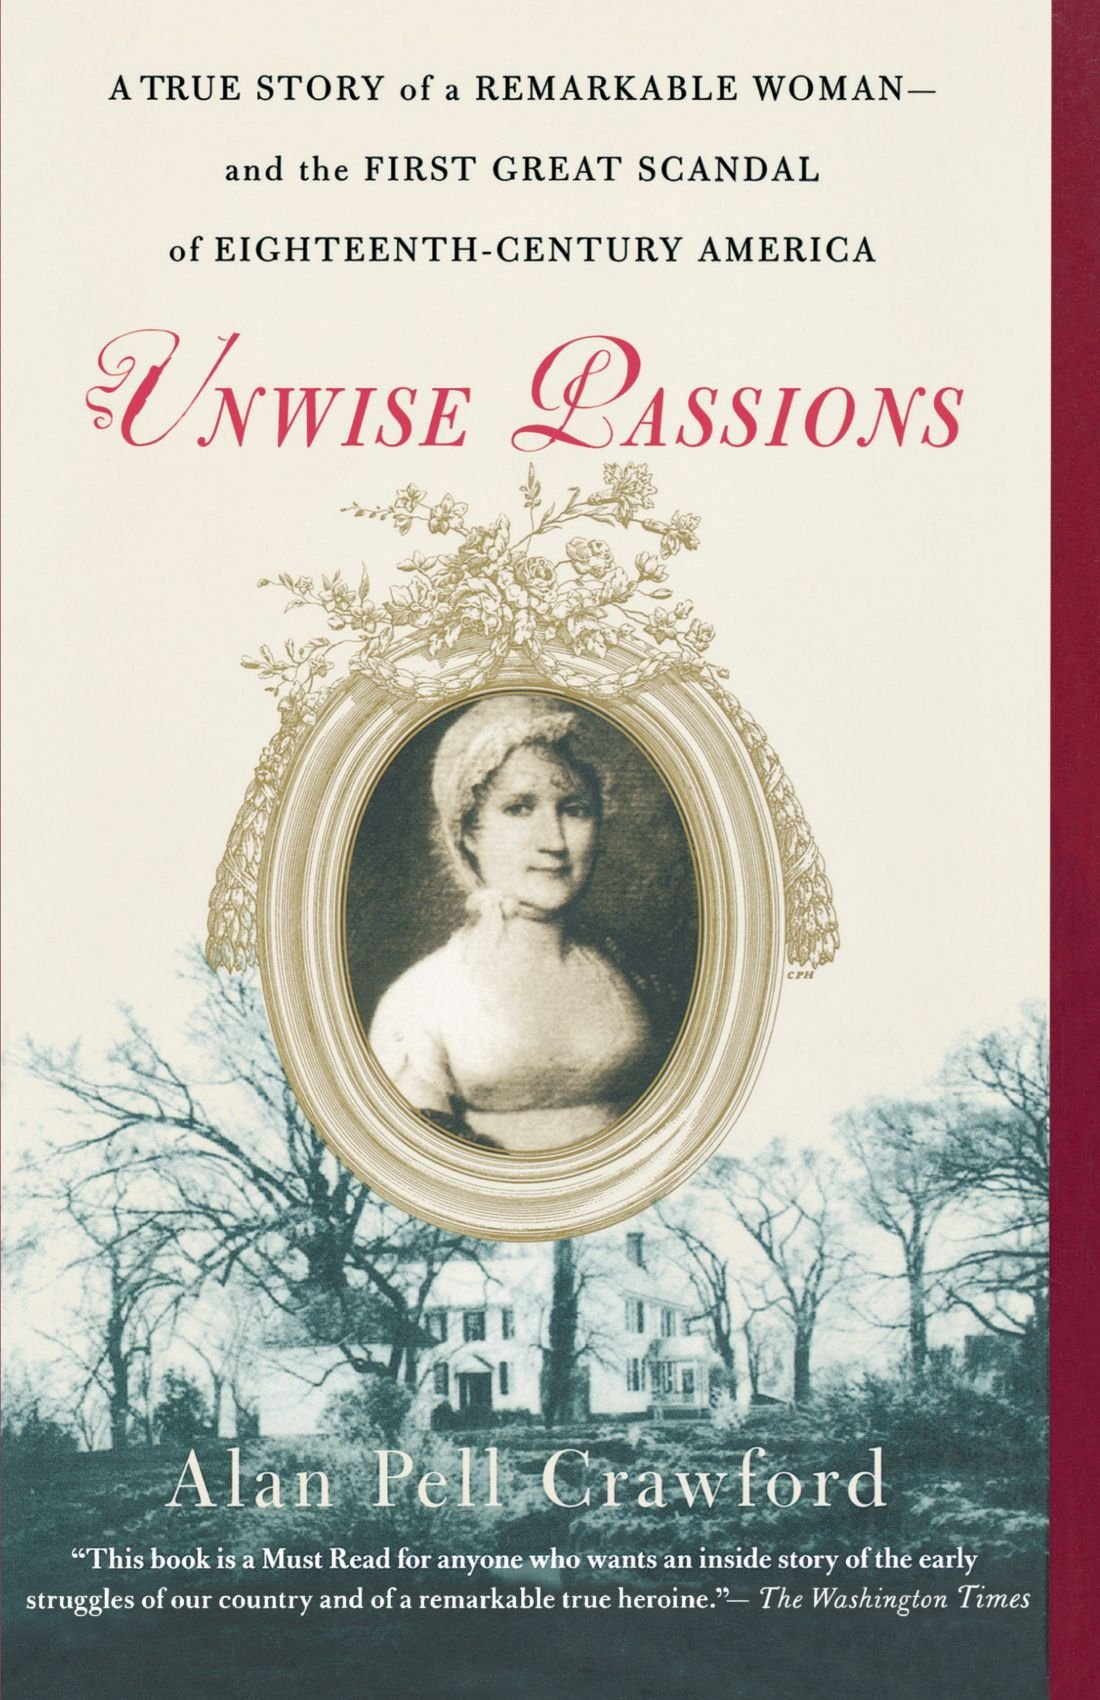 Unwise Passions: A True Story of a Remarkable Woman-and the First Great Scandal of Eighteenth-Century America